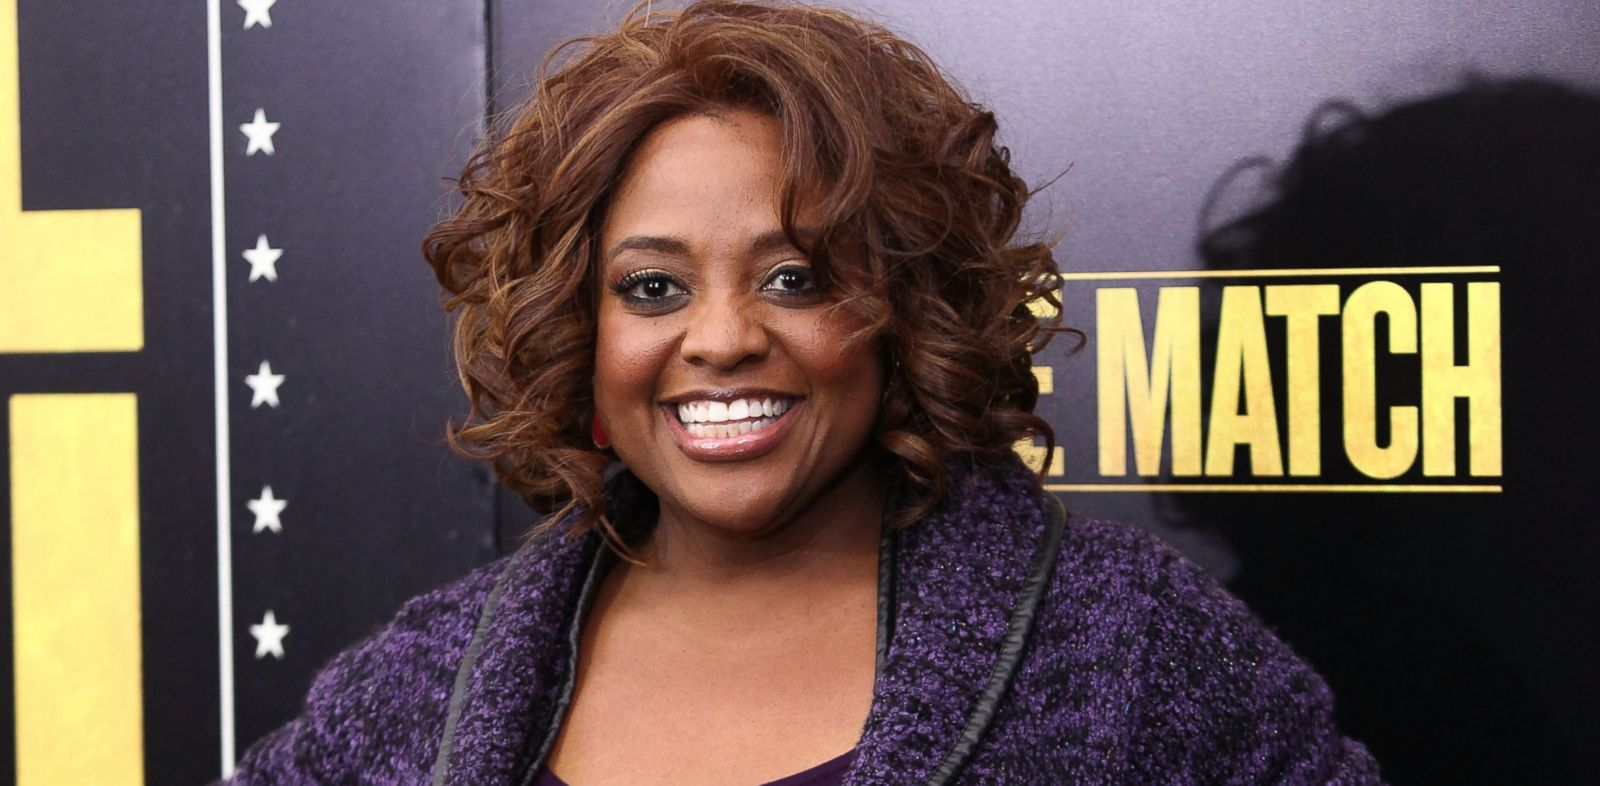 """PHOTO: In this file photo, Sherri Shepherd attends the """"Grudge Match"""" screening on Dec. 16, 2013 in New York City."""